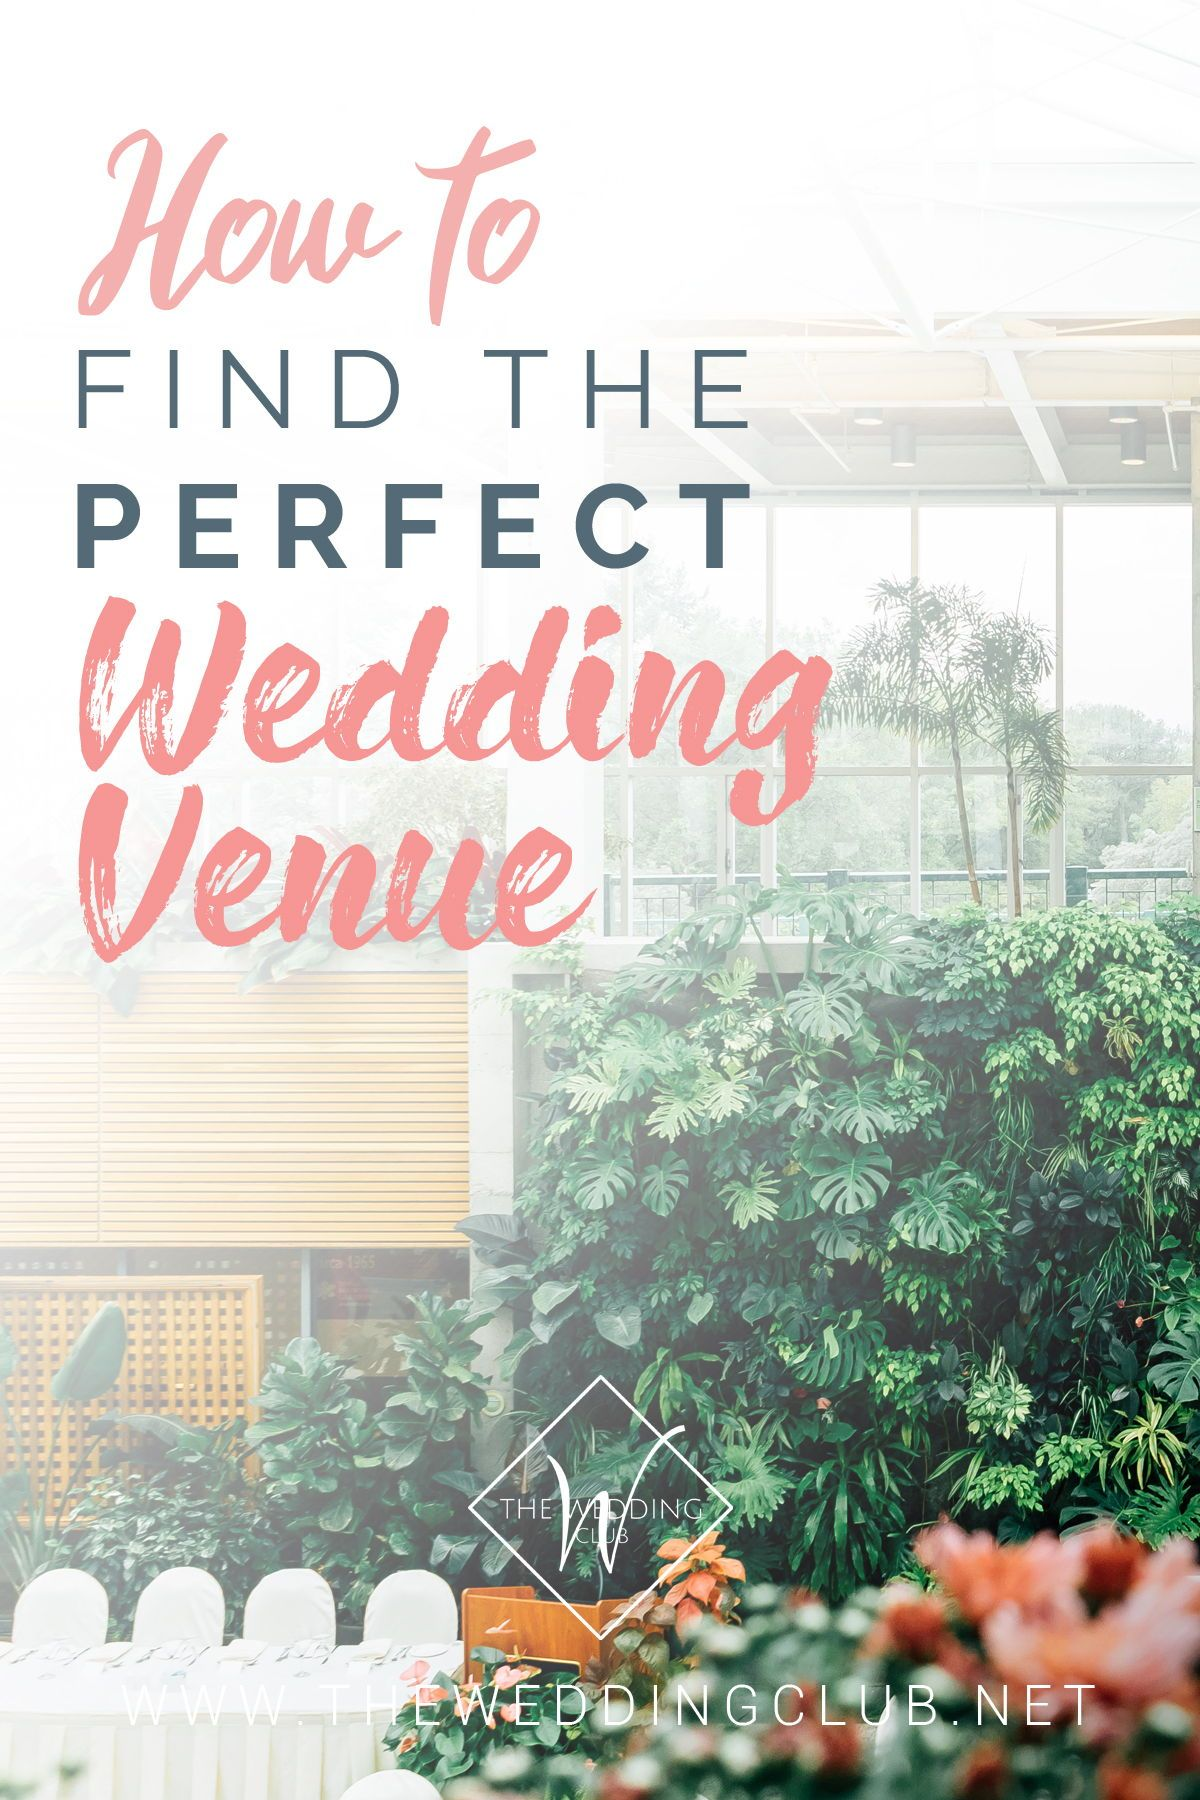 How to find the perfect wedding venue! A guide to locating that stunning location you've always dreamed of + what to look for, elements needed at a venue, etc. Here at TWC we aim to provide as many useful posts as possible to the bride who wants to plan her own wedding. #weddings #brides #wedding2020 #weddingtips #weddingvenue